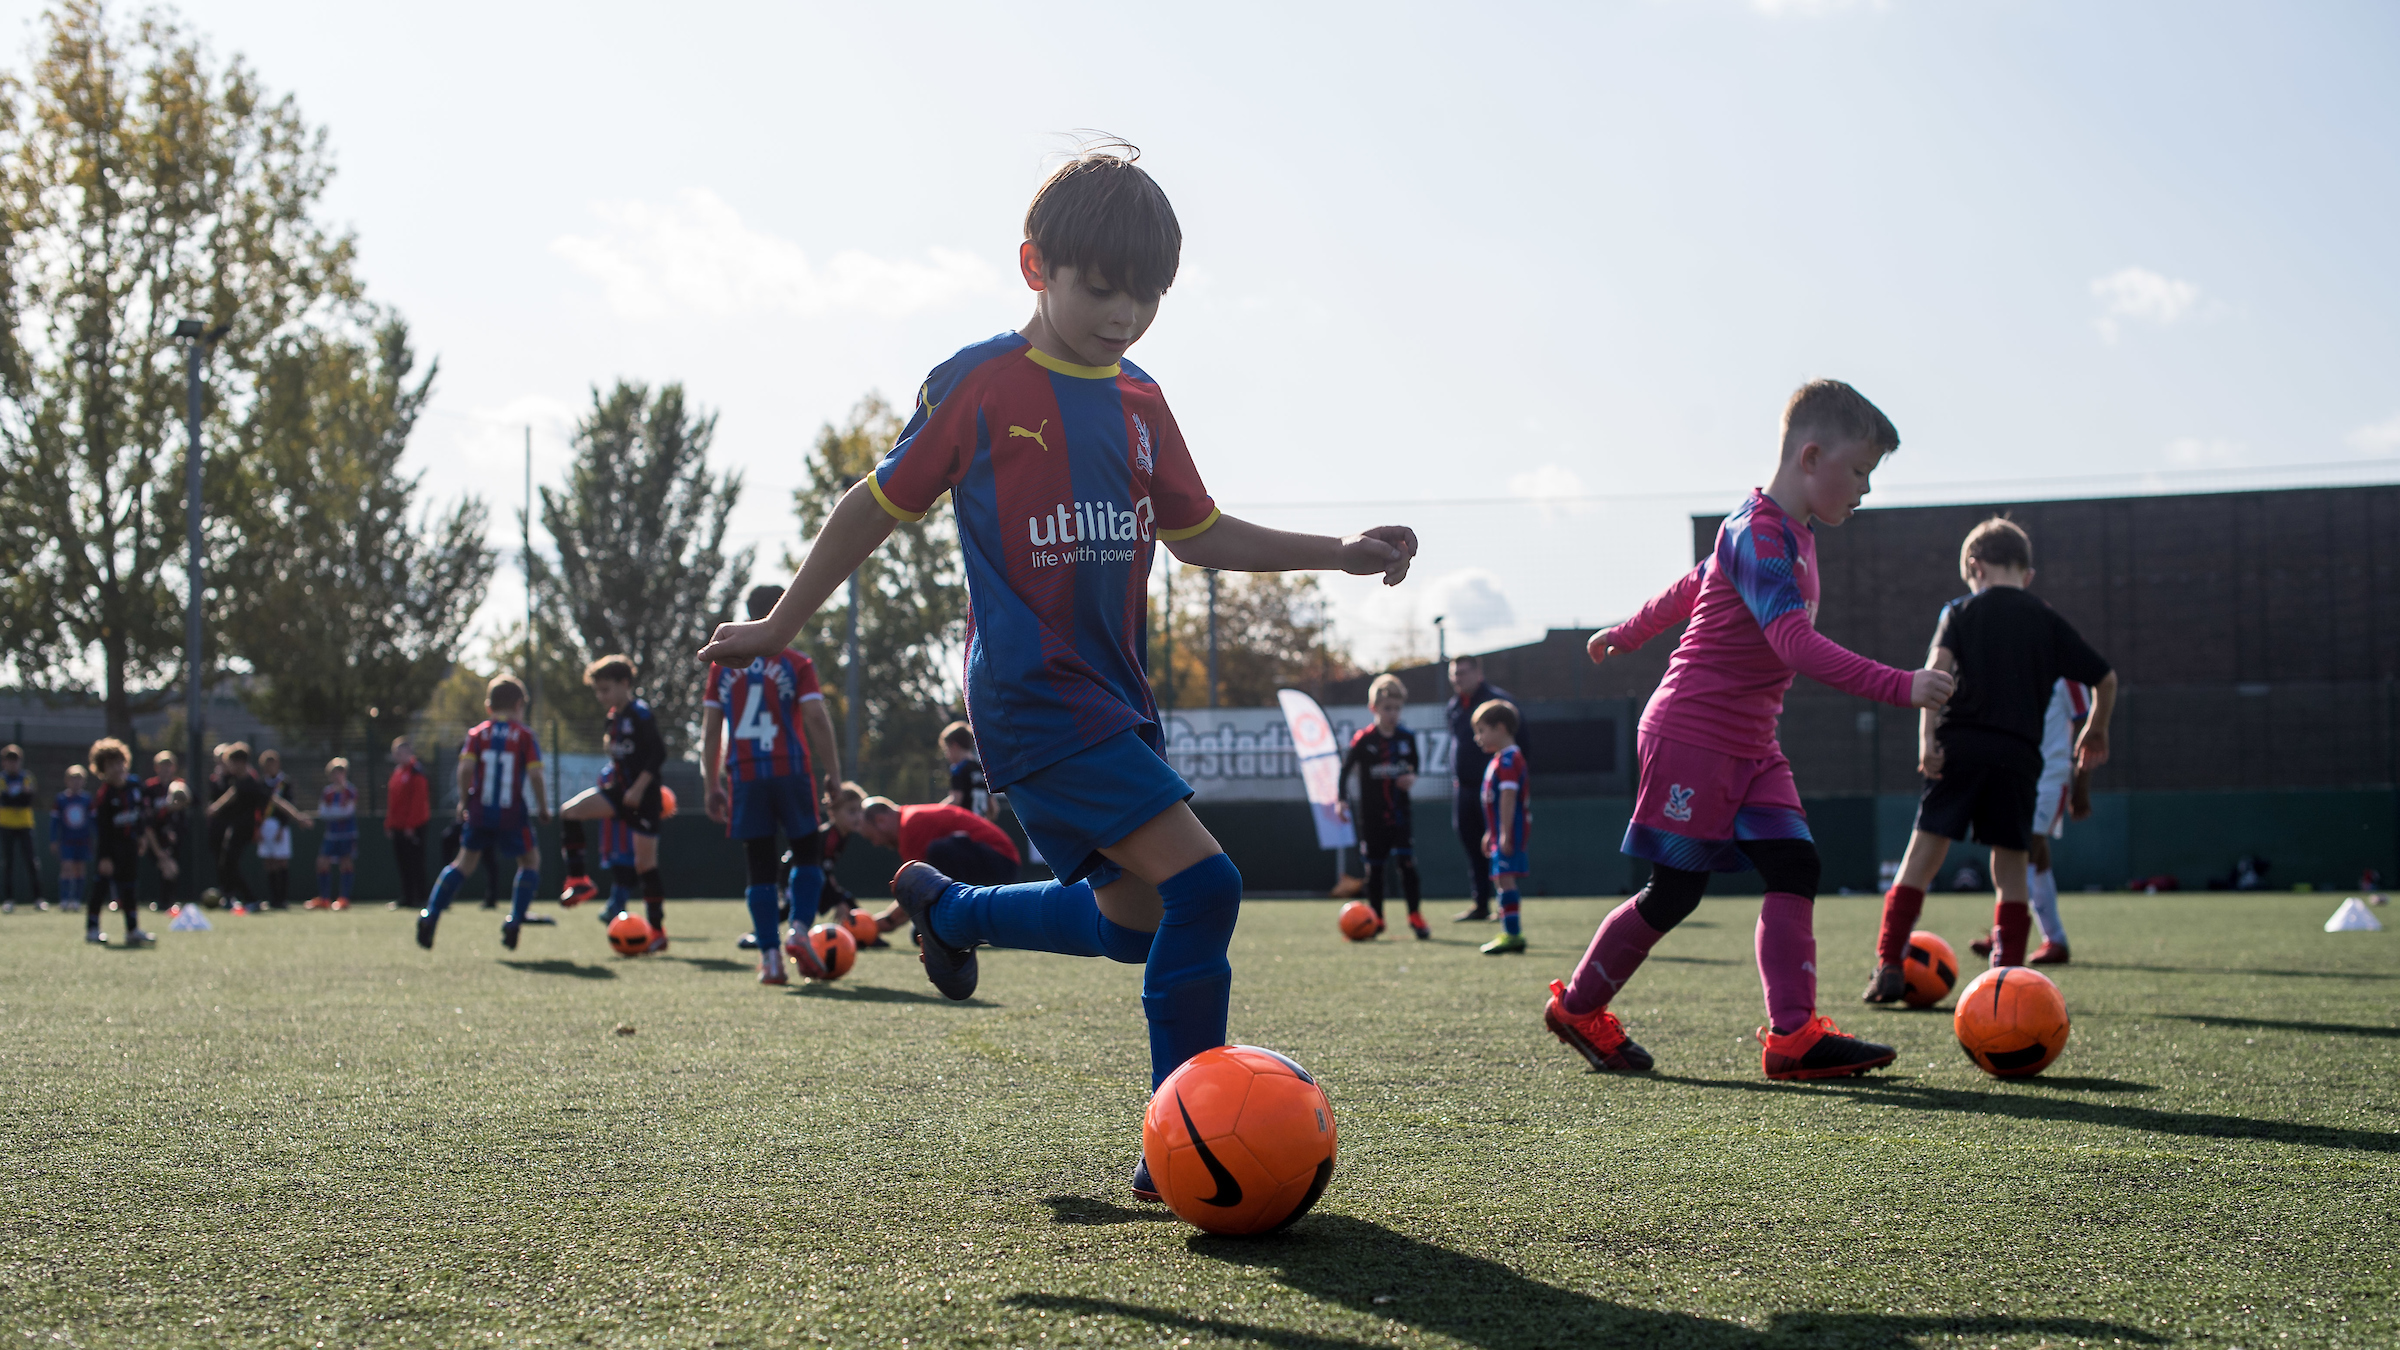 Join Palace for Life Soccer Schools this summer